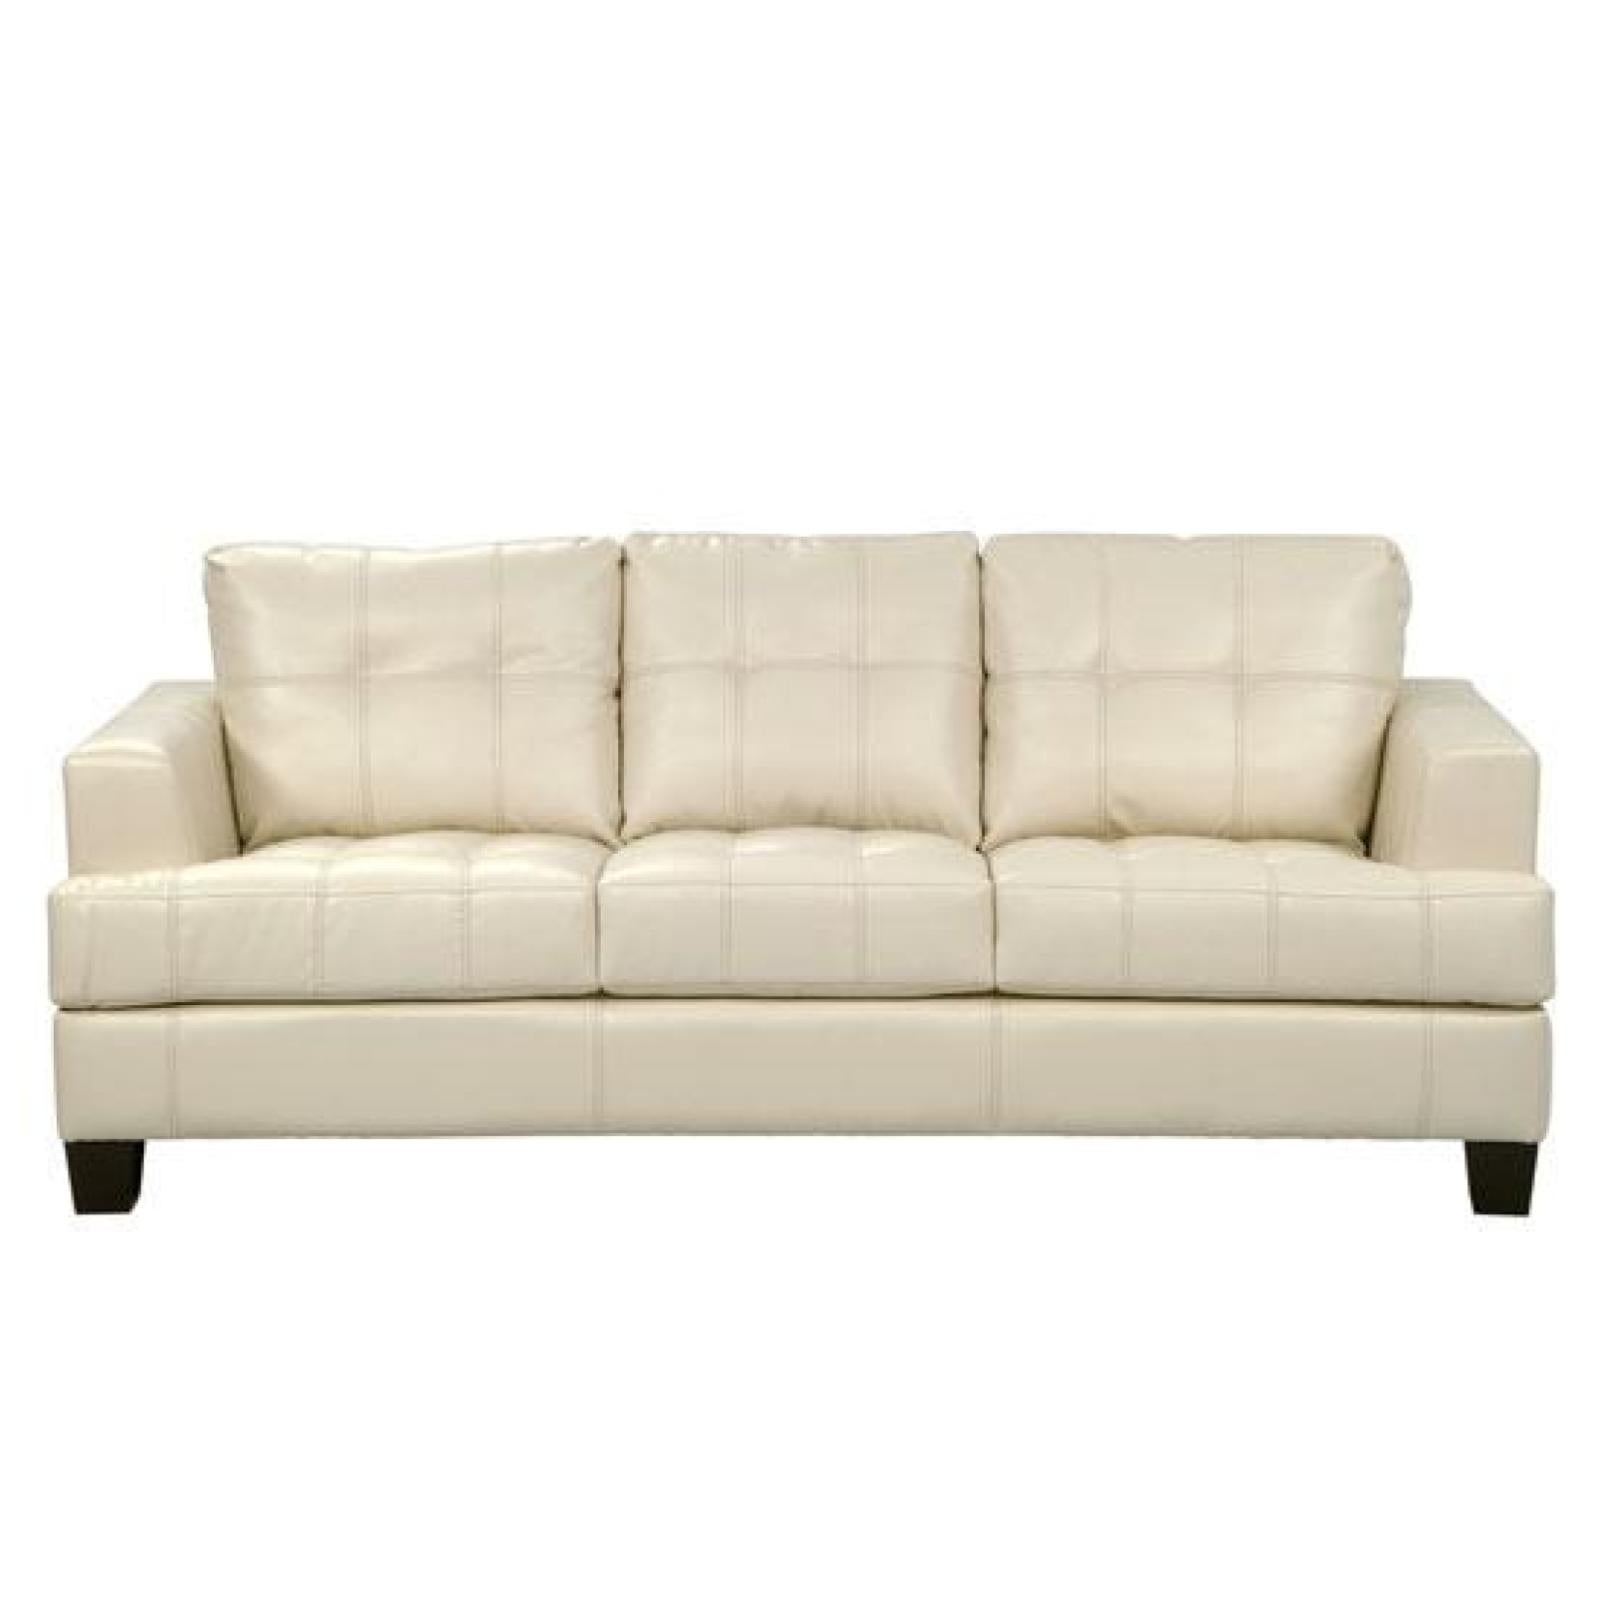 Furniture At Wholesale Prices: Natuzzi King Sofa High Quality Home Design